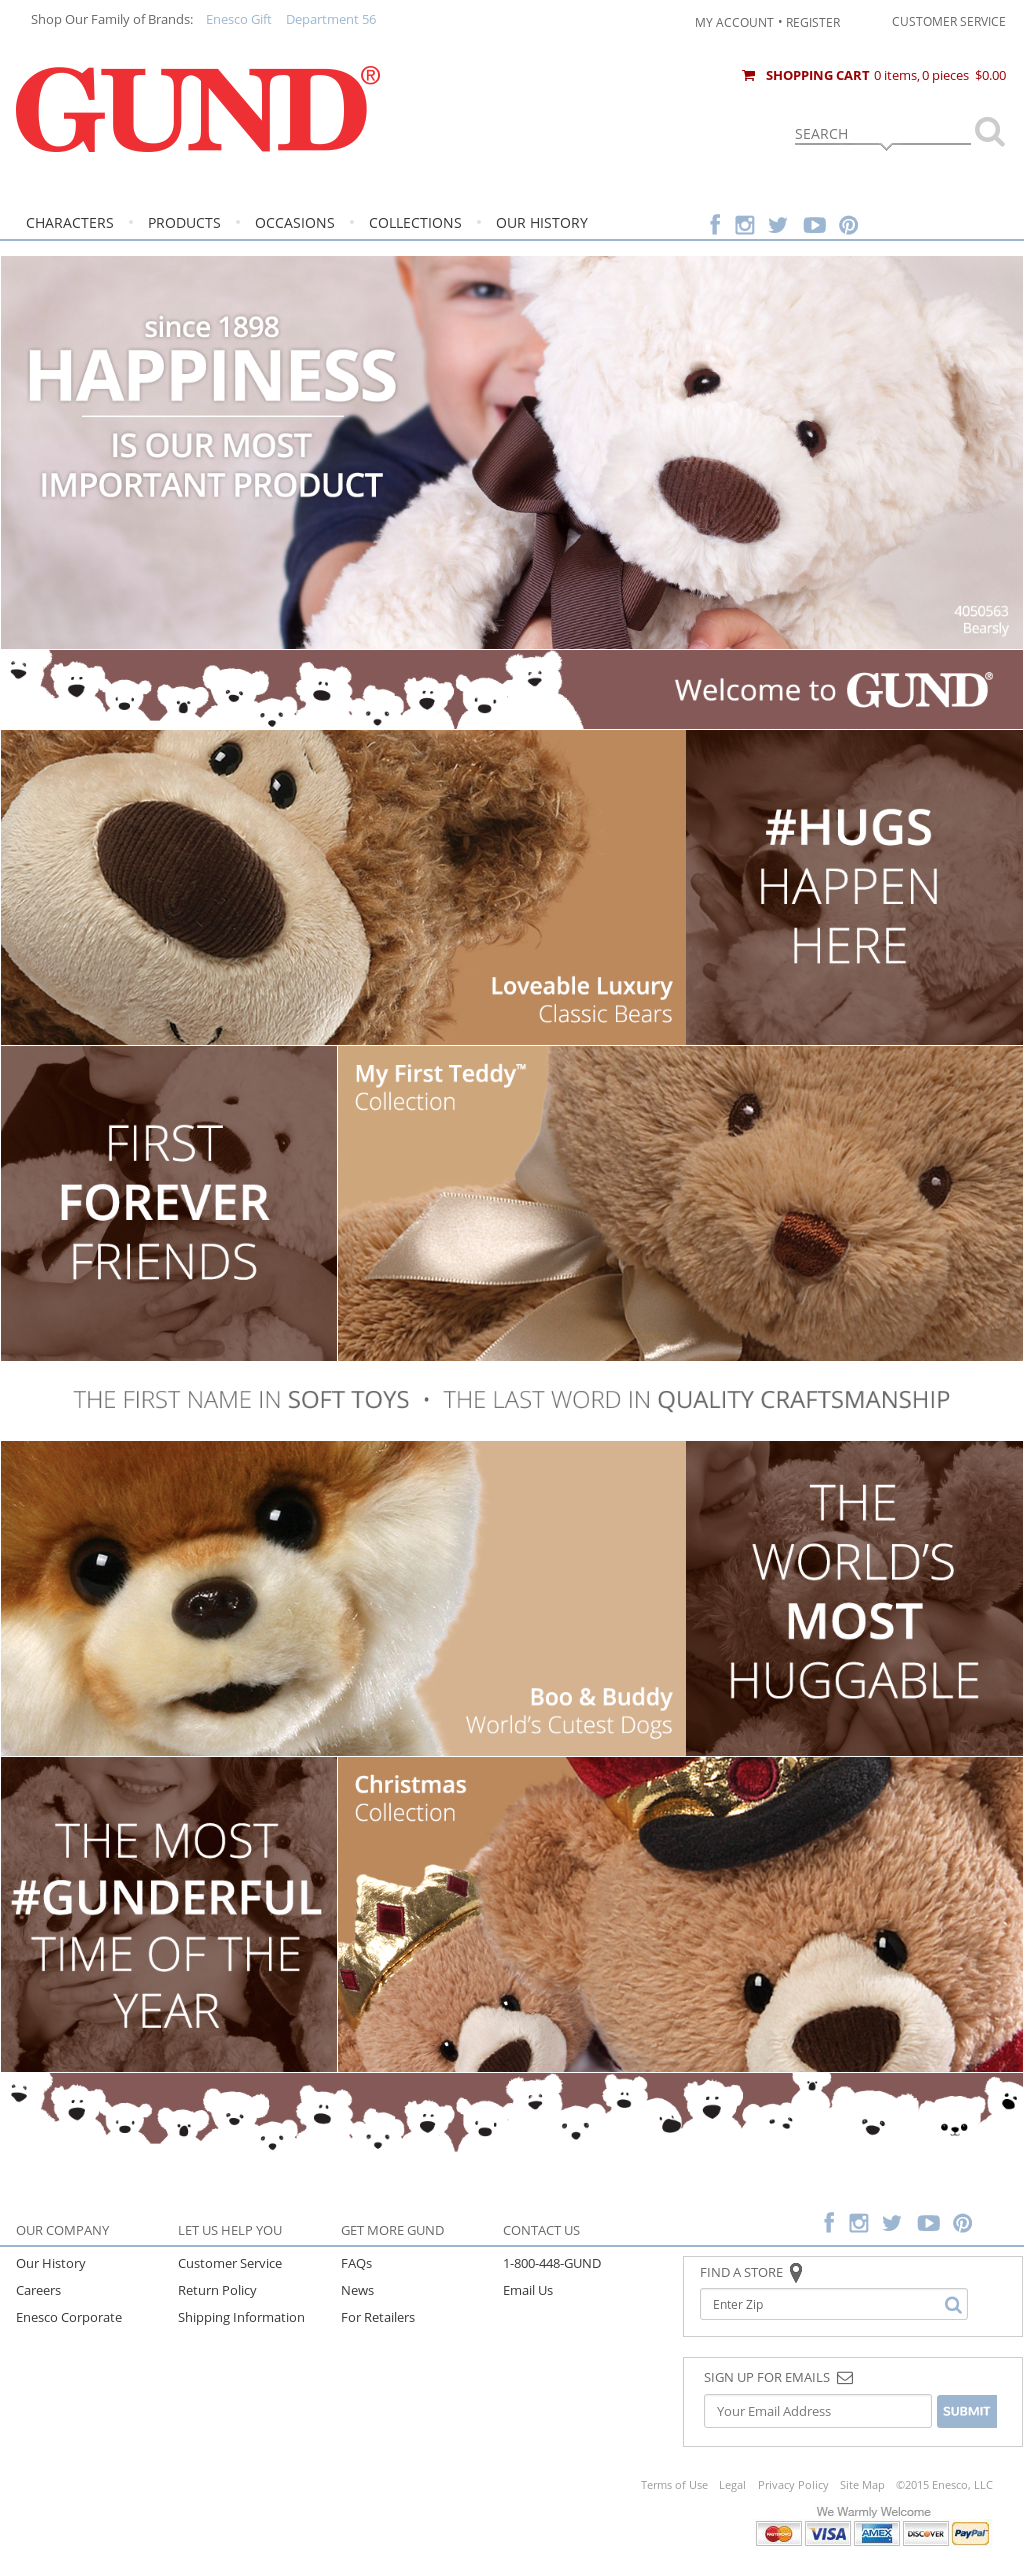 GUND Competitors, Revenue and Employees - Owler Company Profile